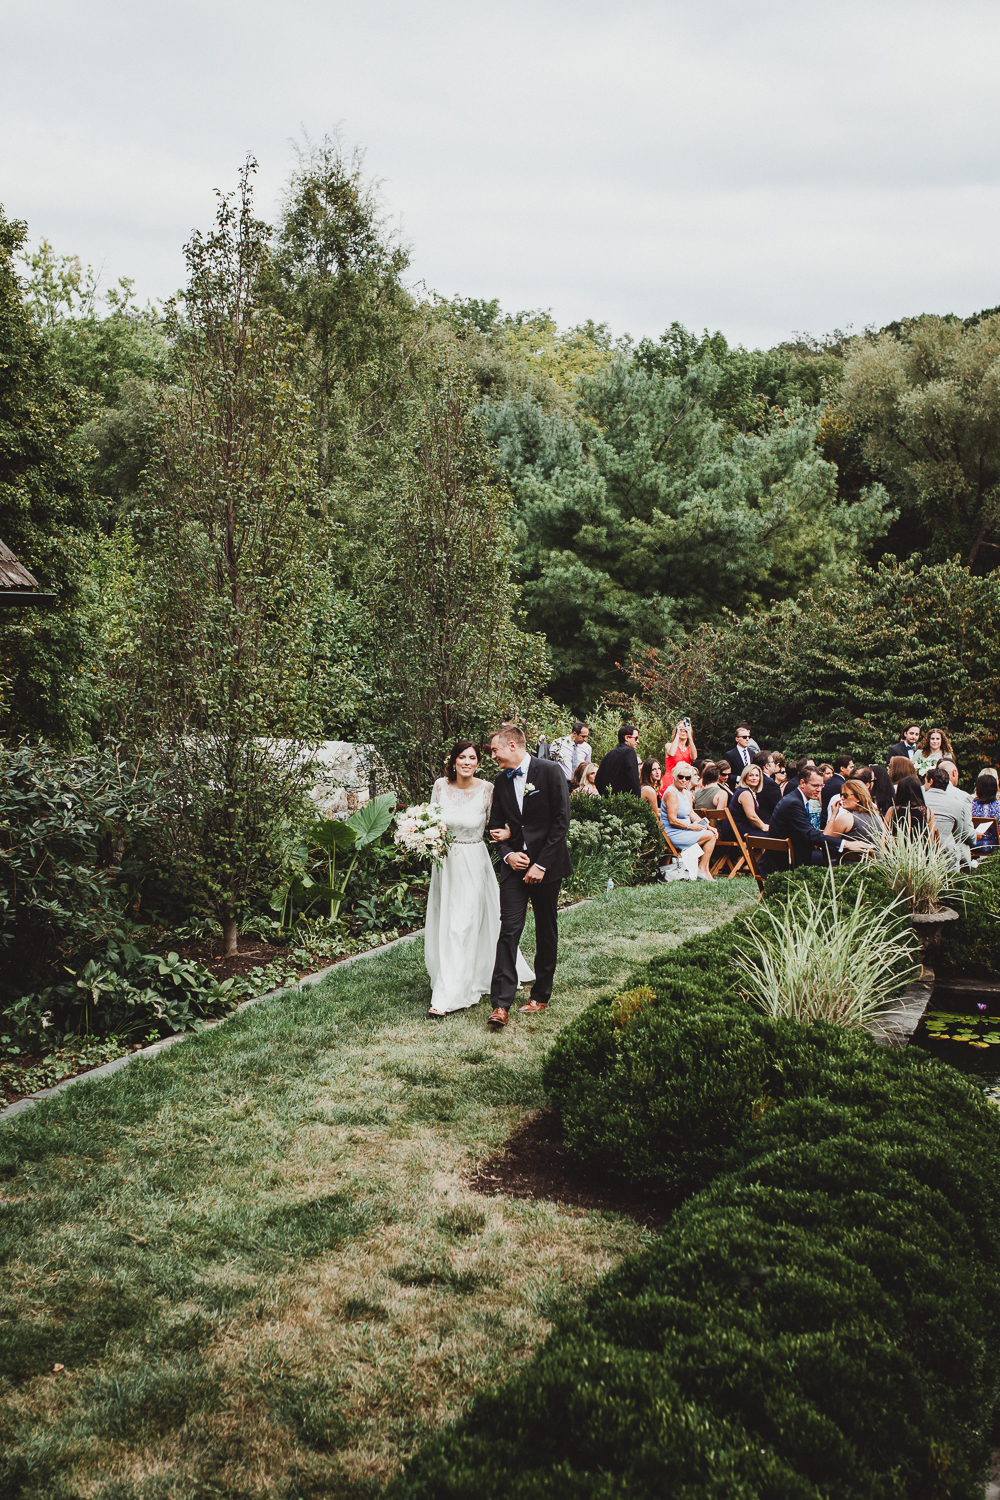 Jardin-De-Buis-Pottersville-NJ-Documentary-Wedding-Photographer-43.jpg